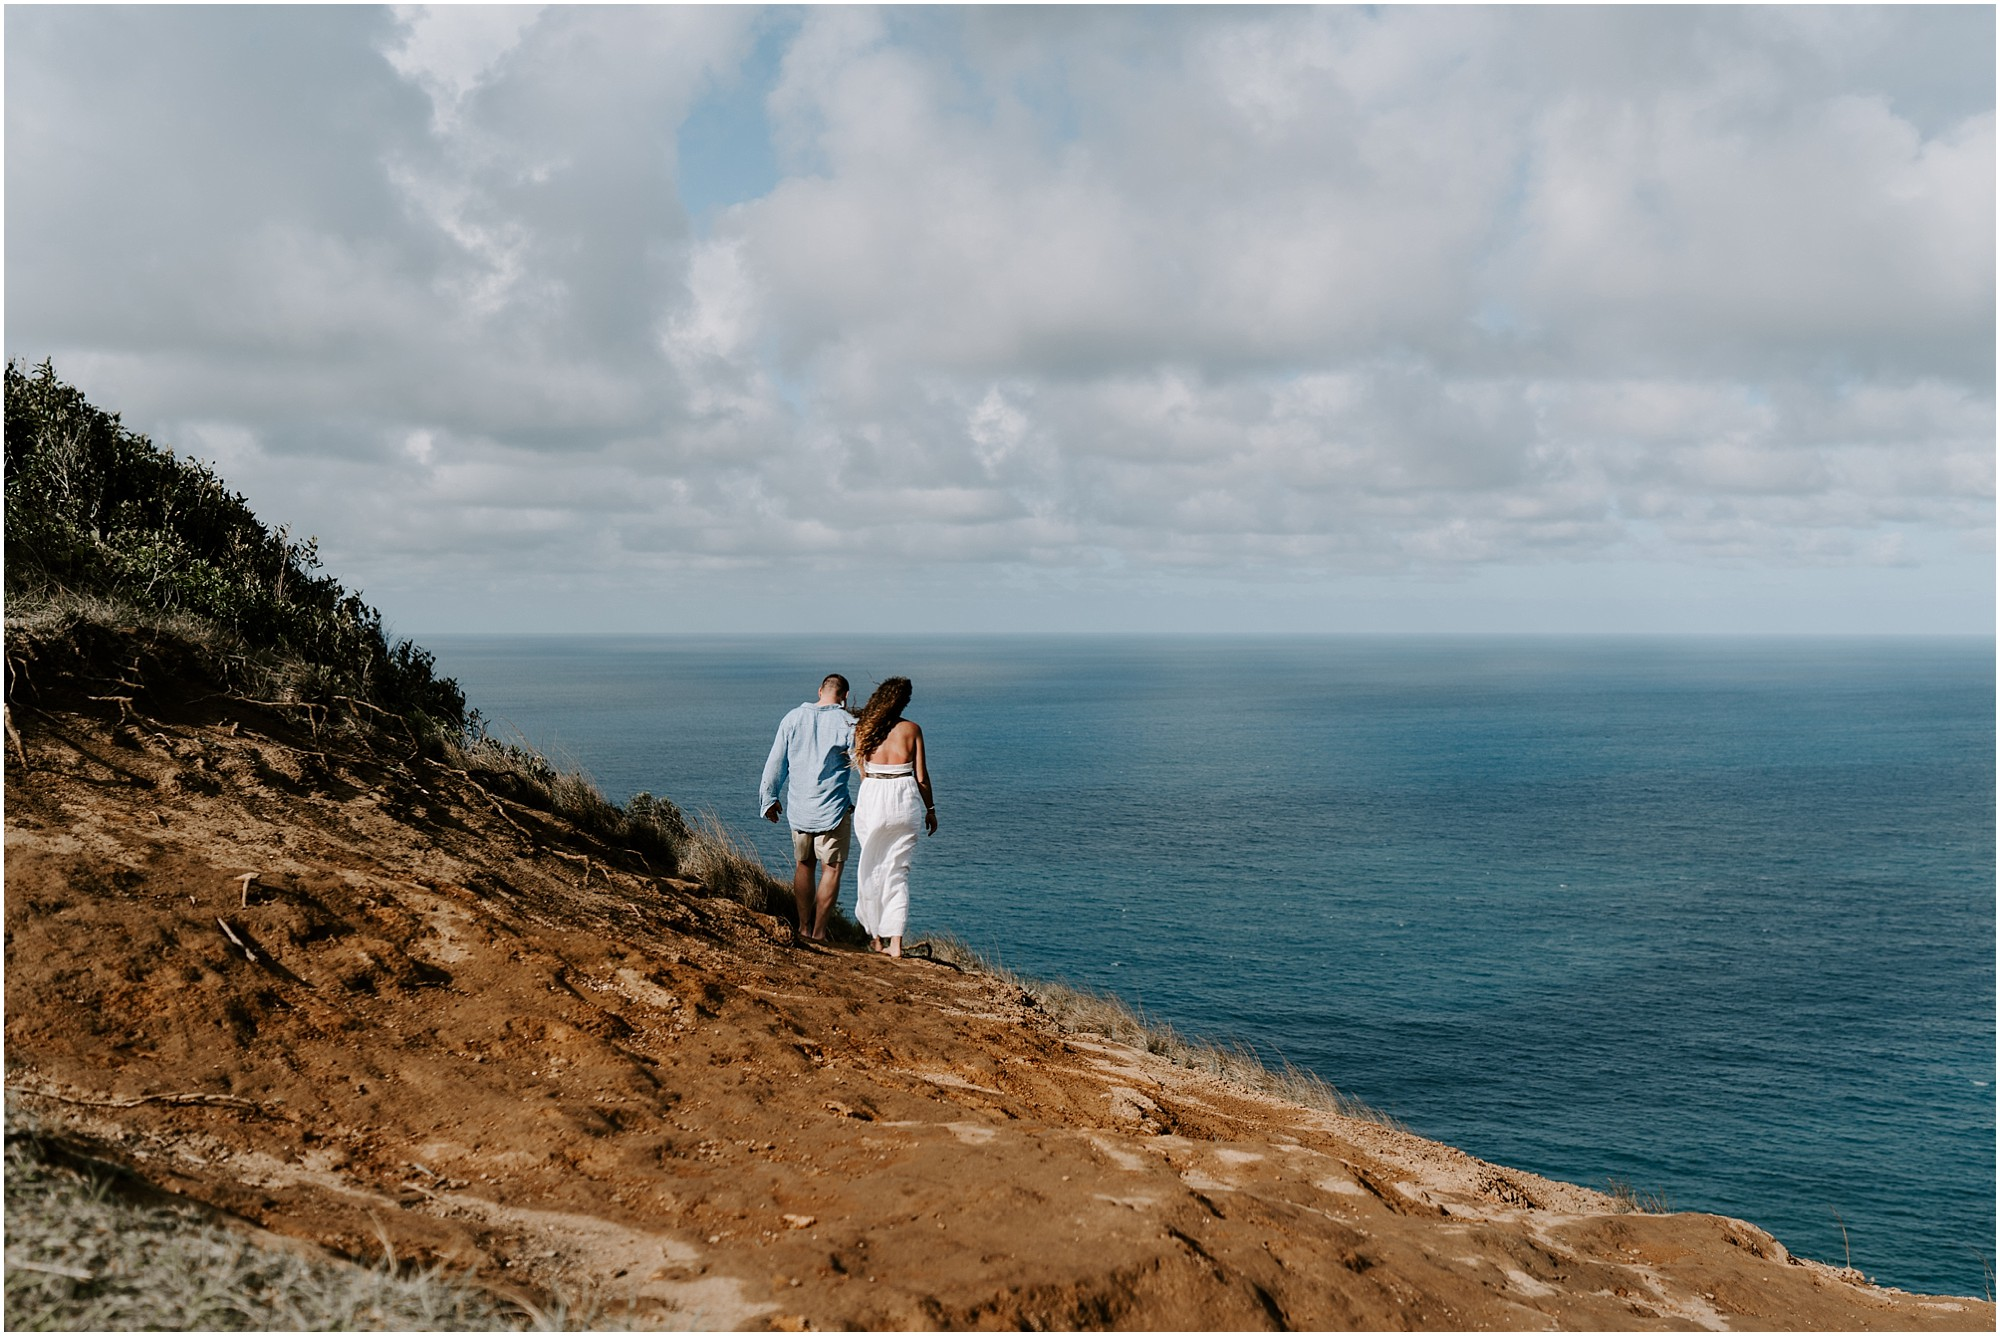 big-island-valley-proposal-hawaii-elopement-photographer_0003.jpg